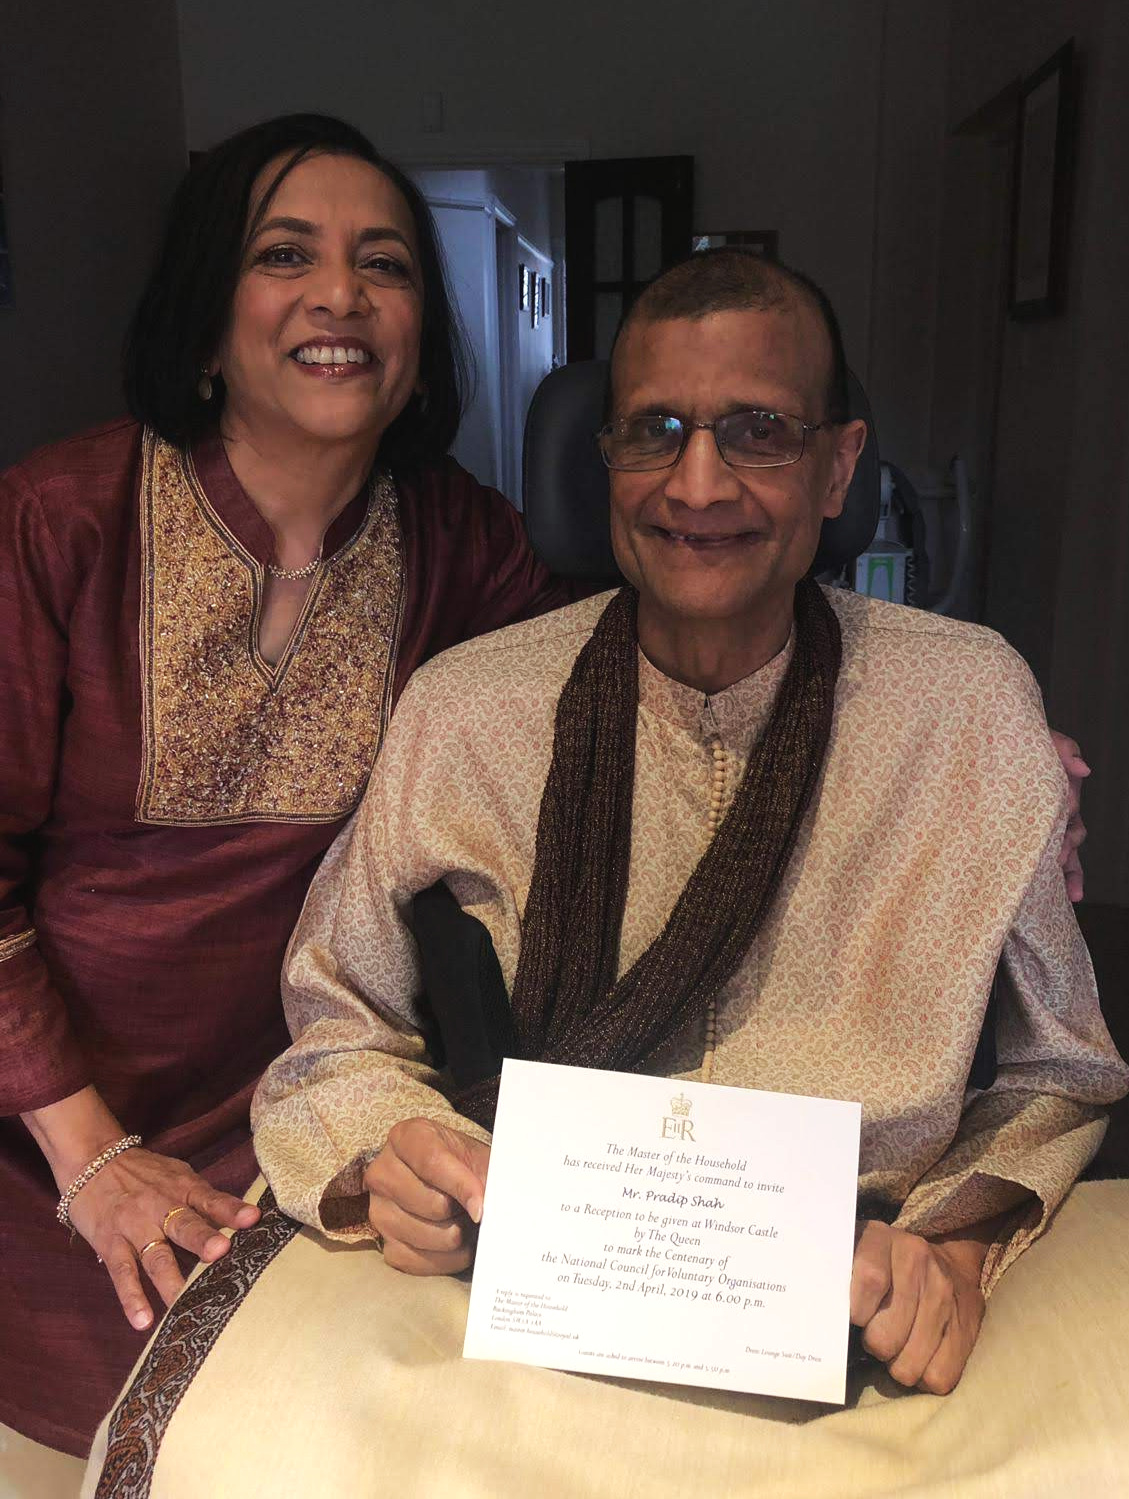 Rashmi and Pradip with the invitation to Windsor